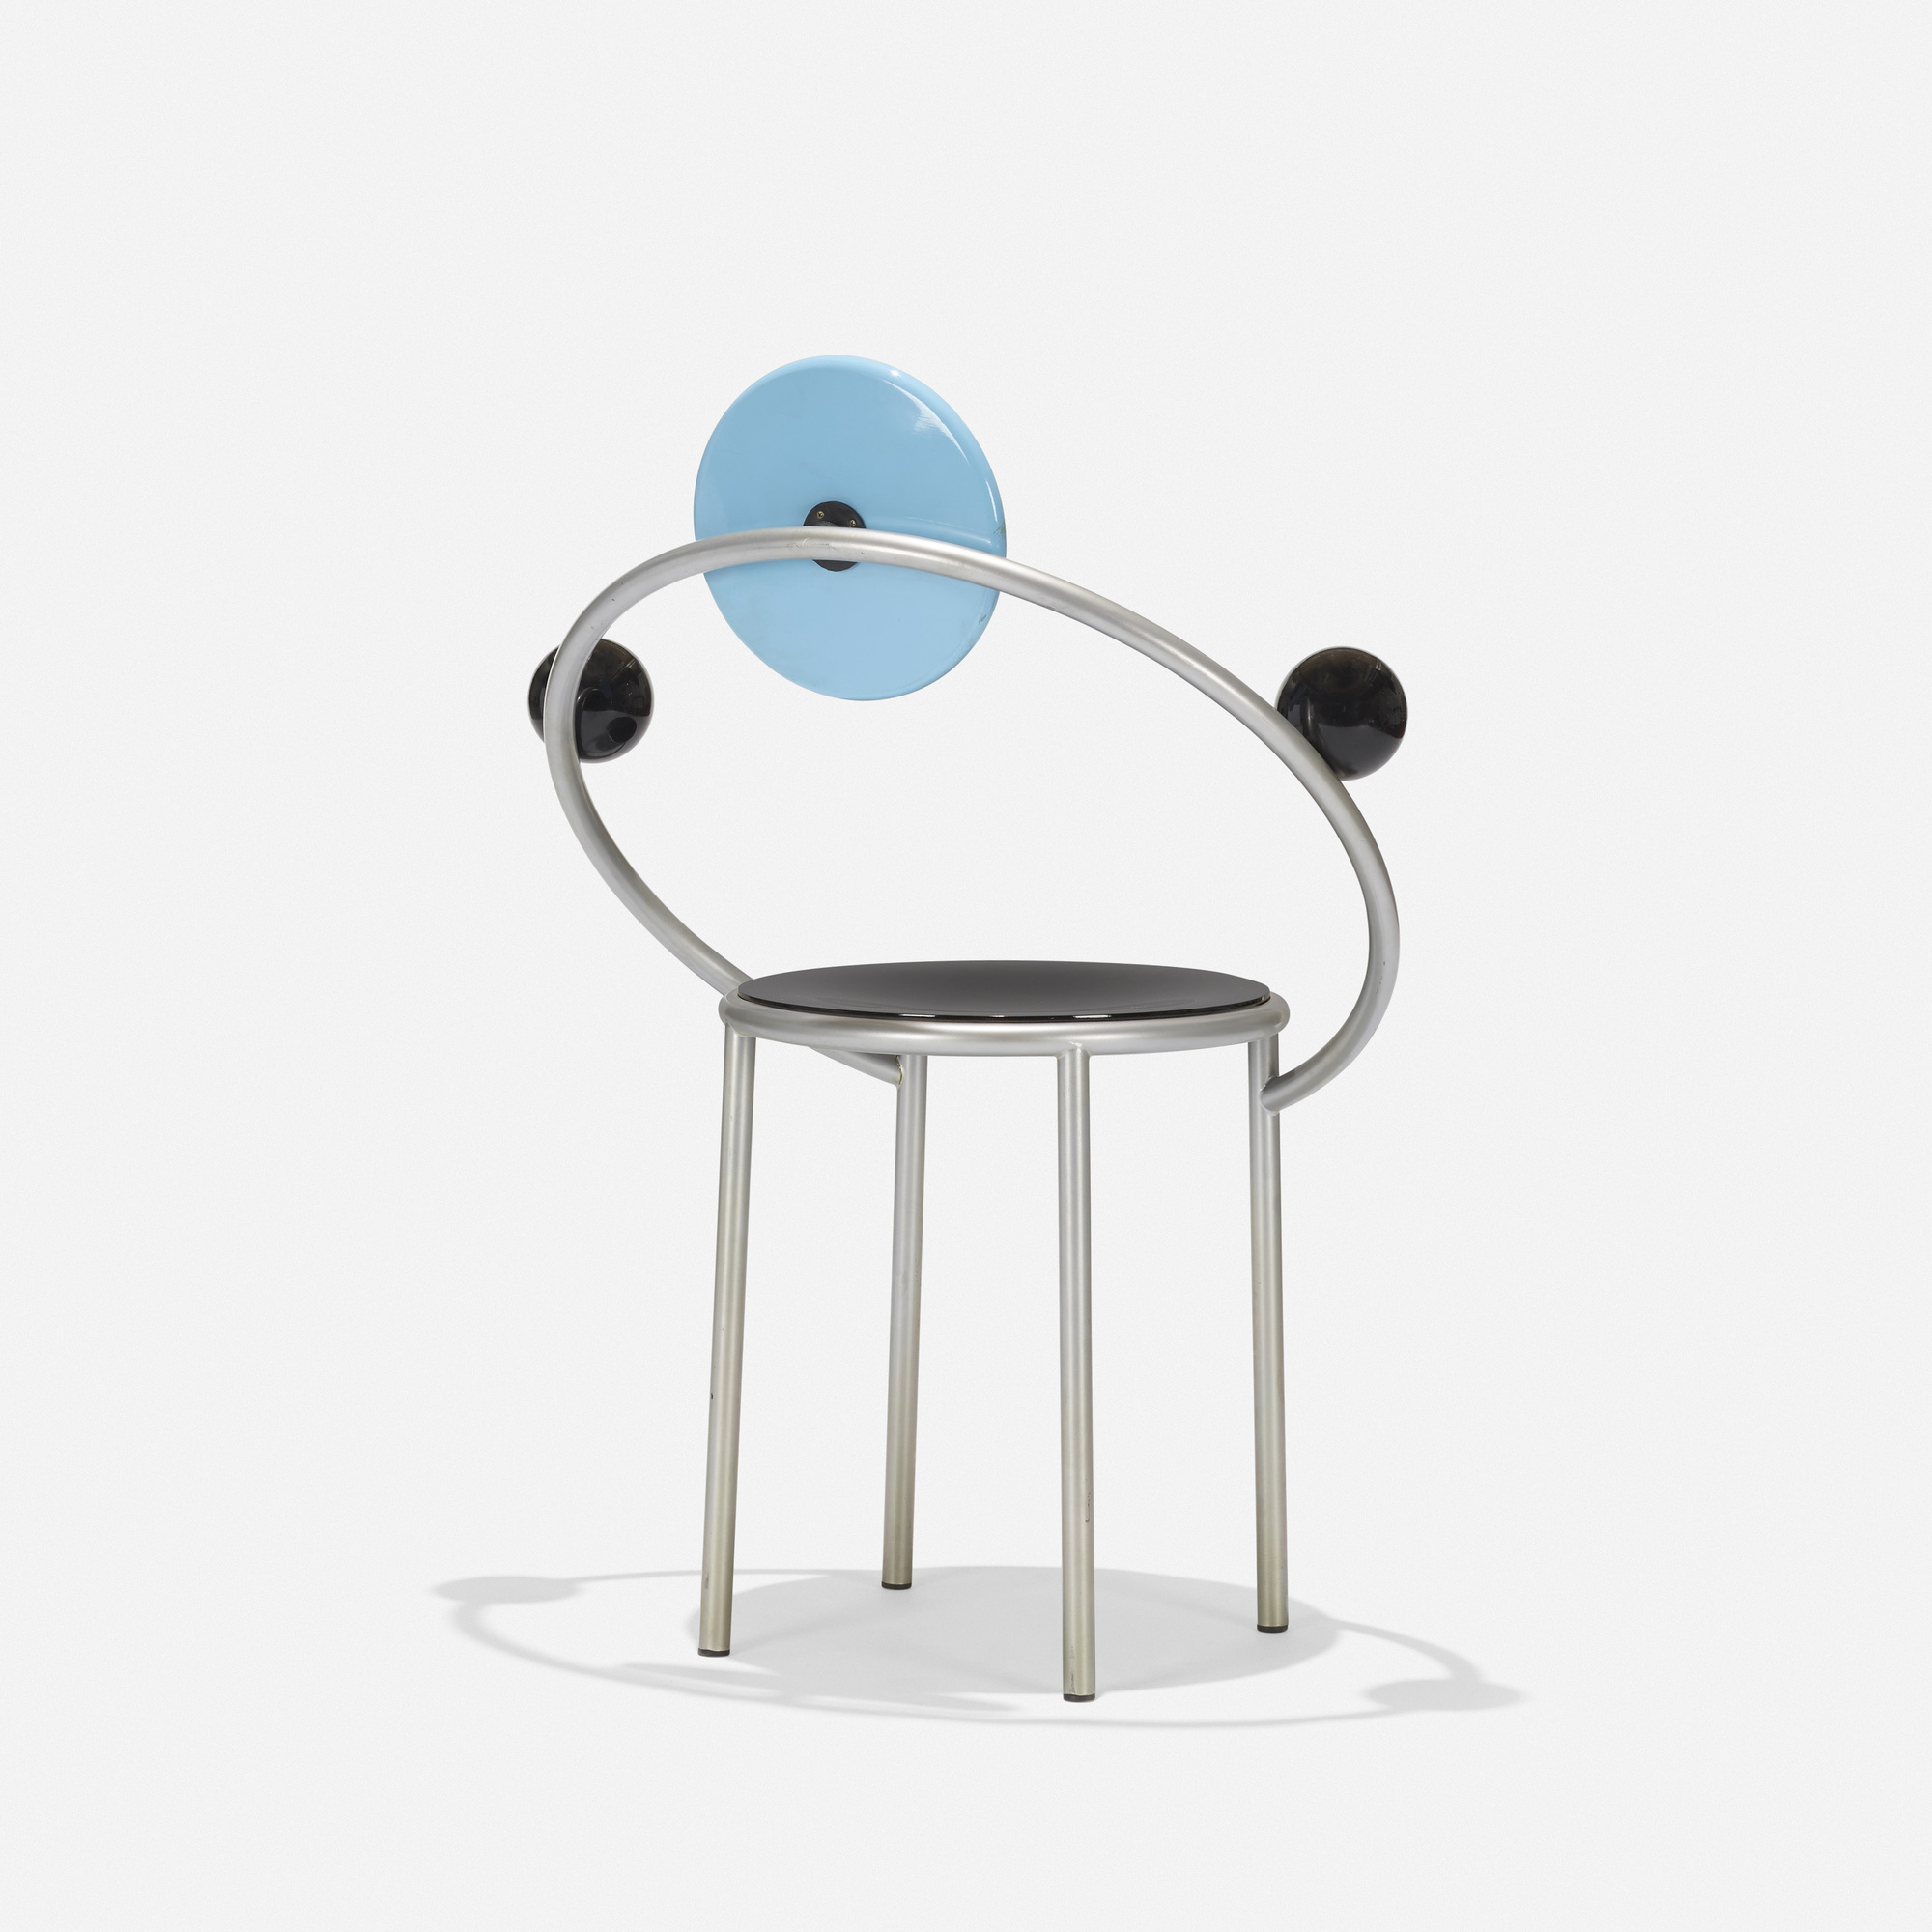 186: Michele De Lucchi / First Chair (3 of 3)